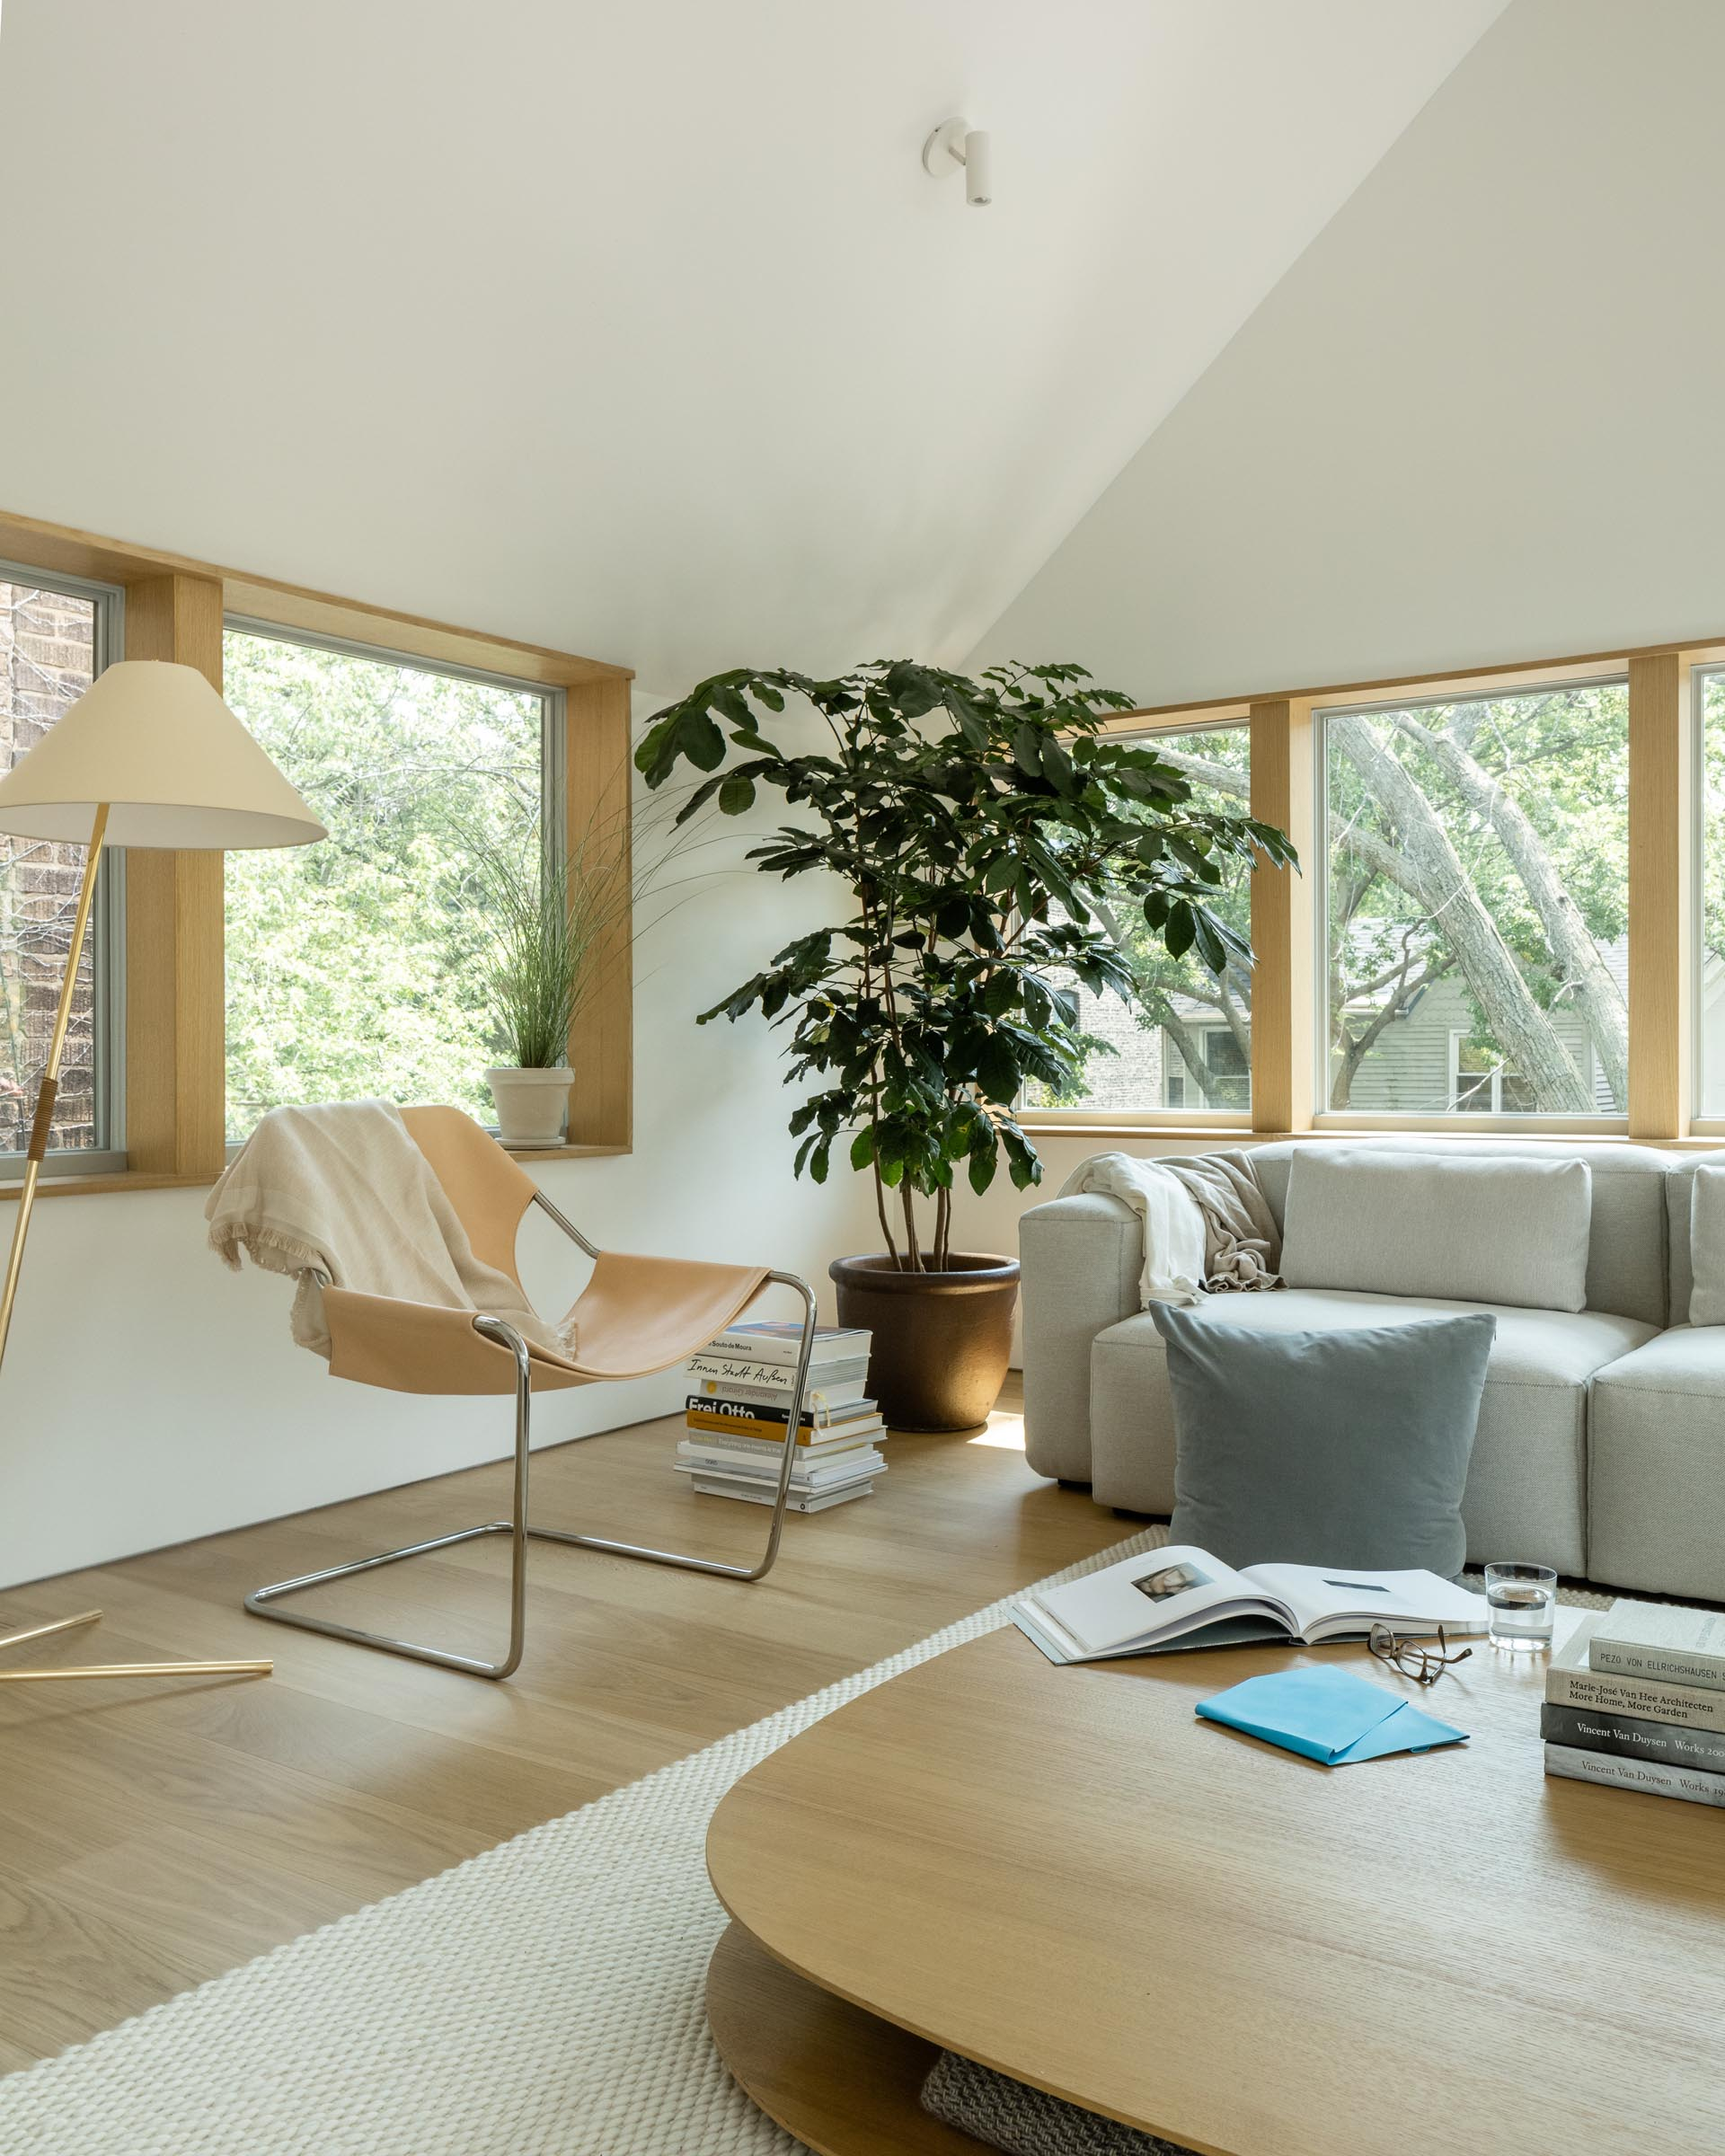 This modern living room has a vaulted ceiling, wood window frames, and minimalist furnishings.